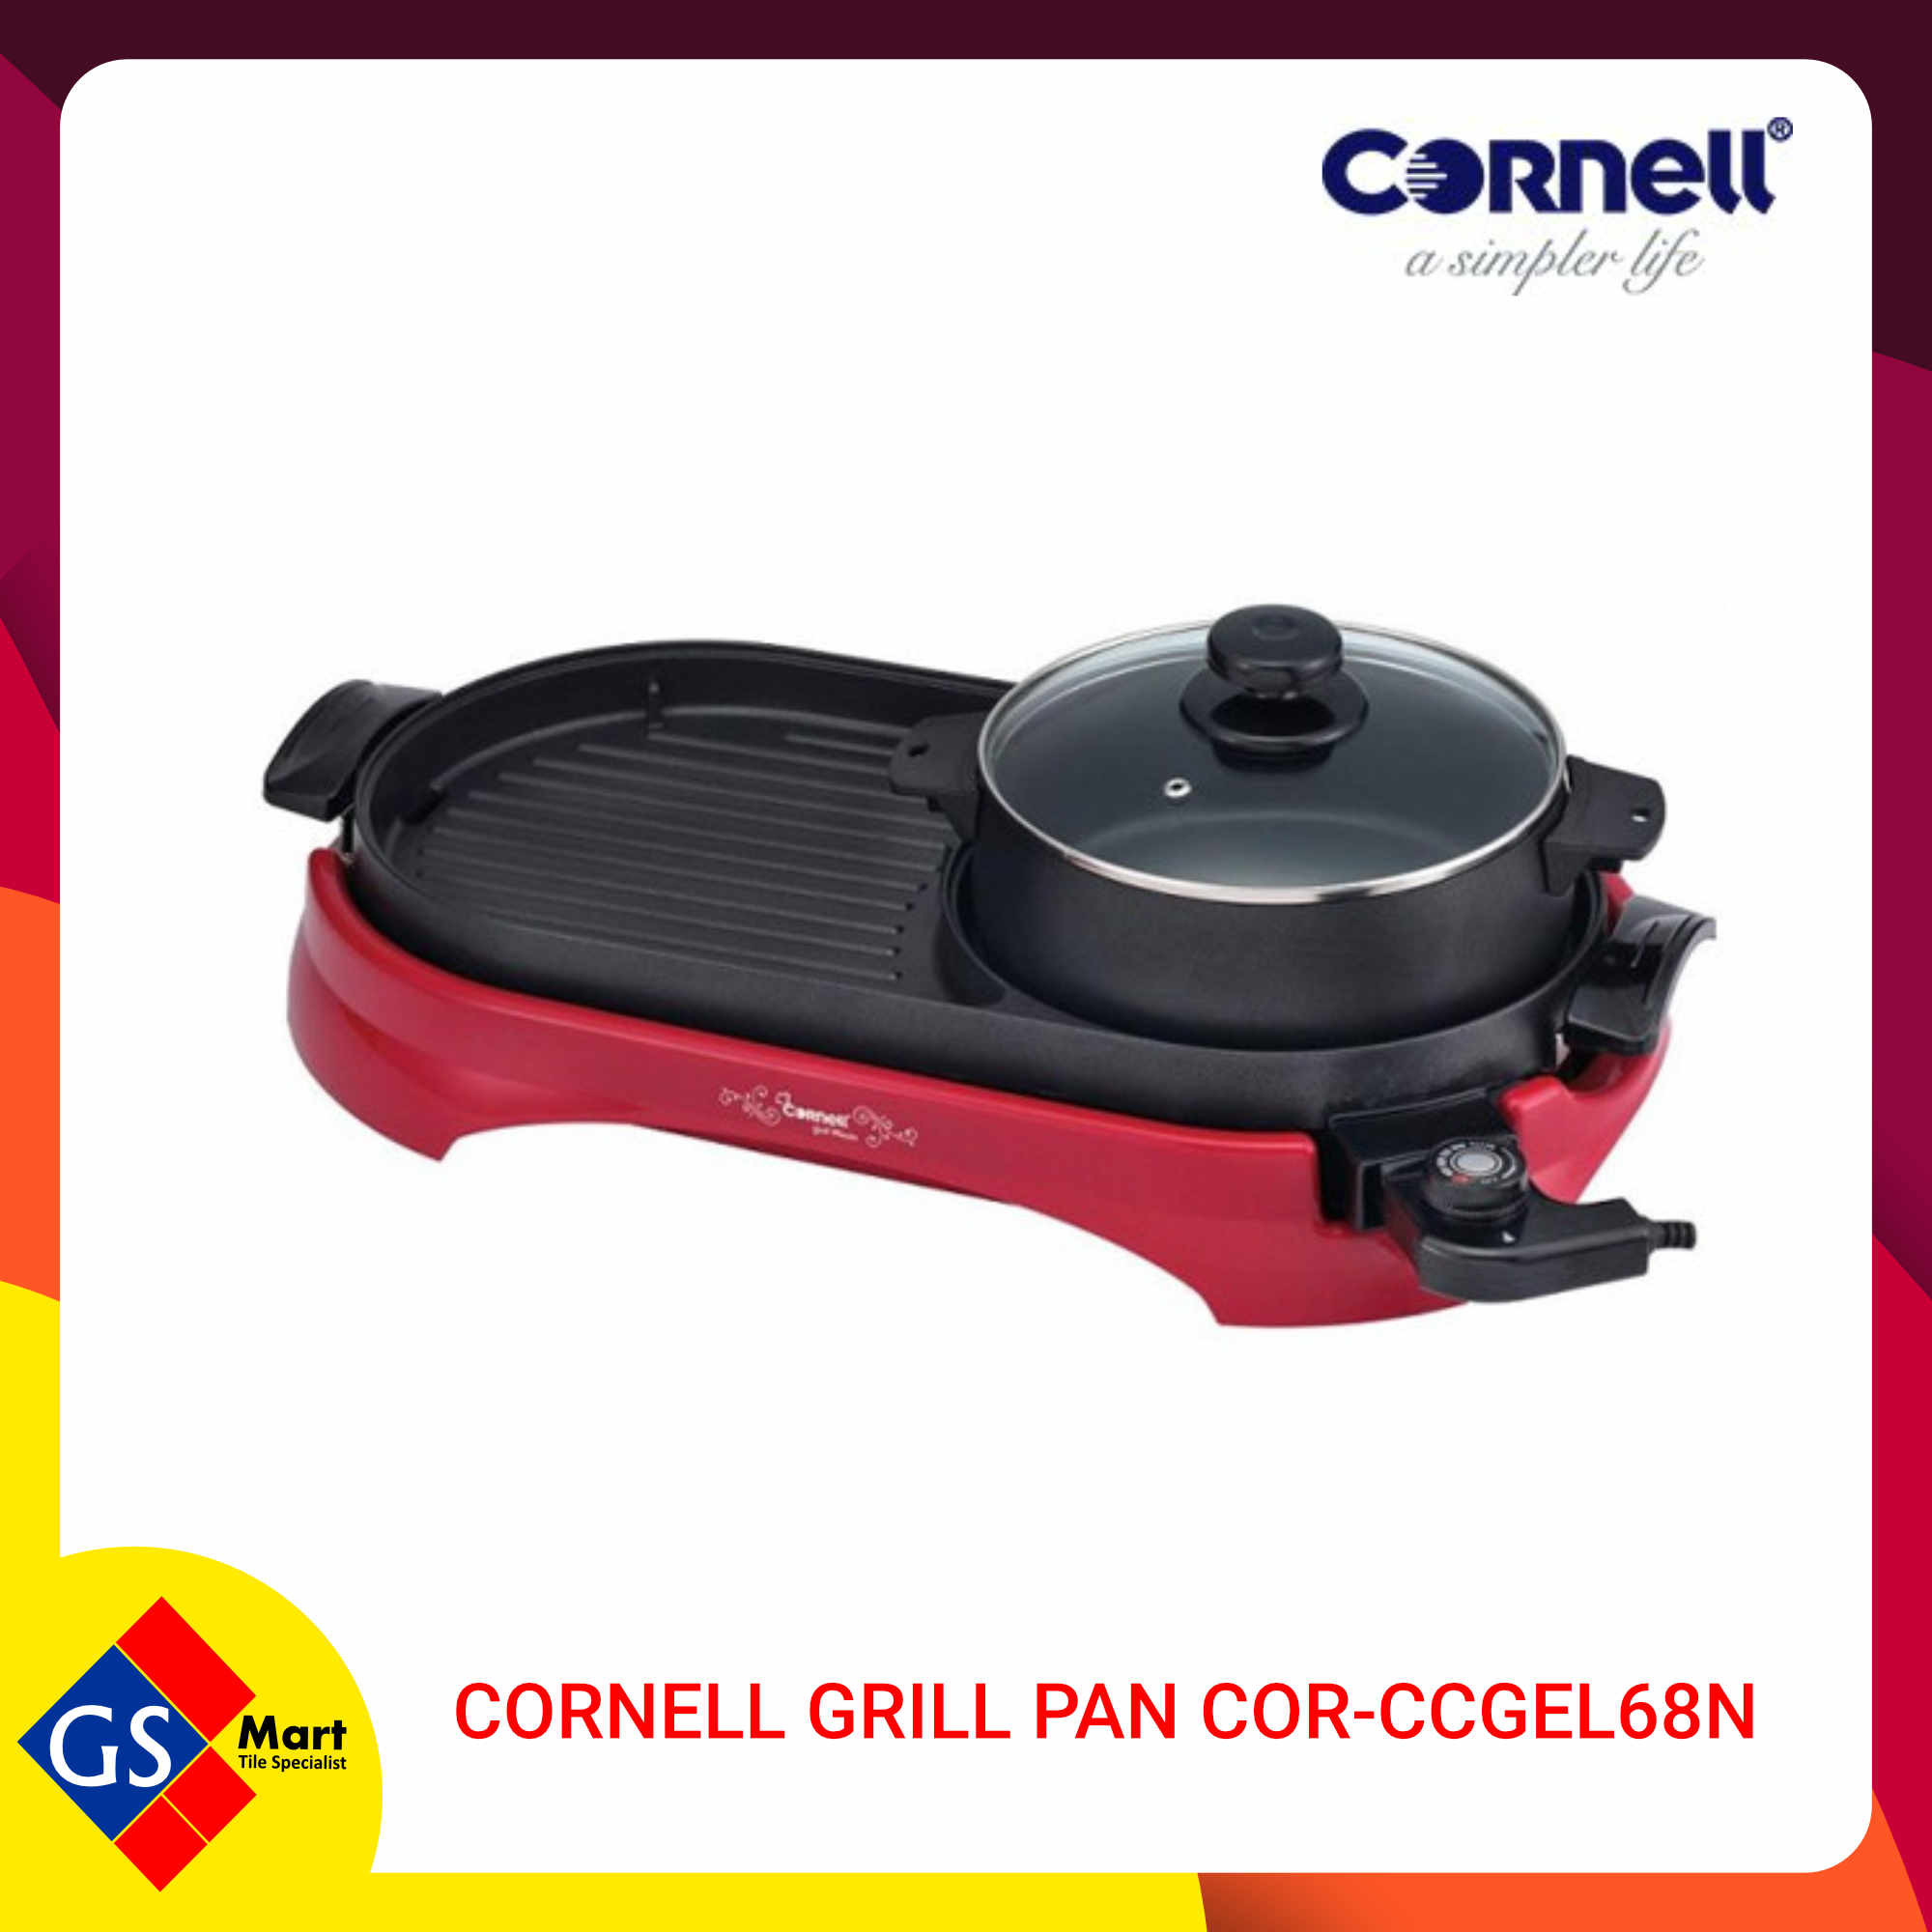 image of CORNELL Grill Pan COR-CCGEL68N